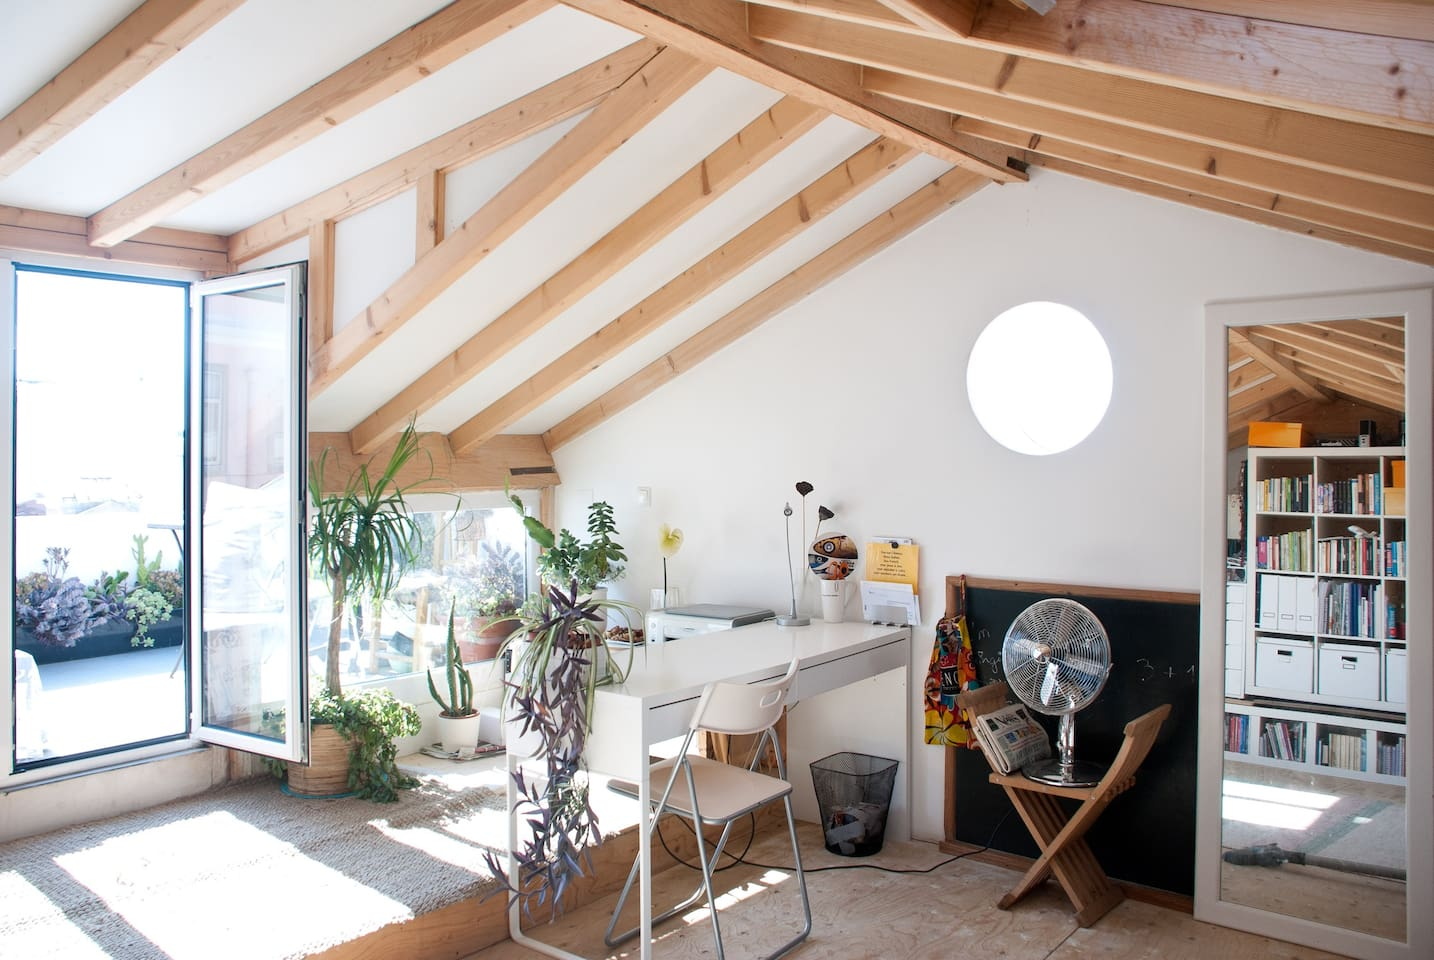 spacious and cheerful room